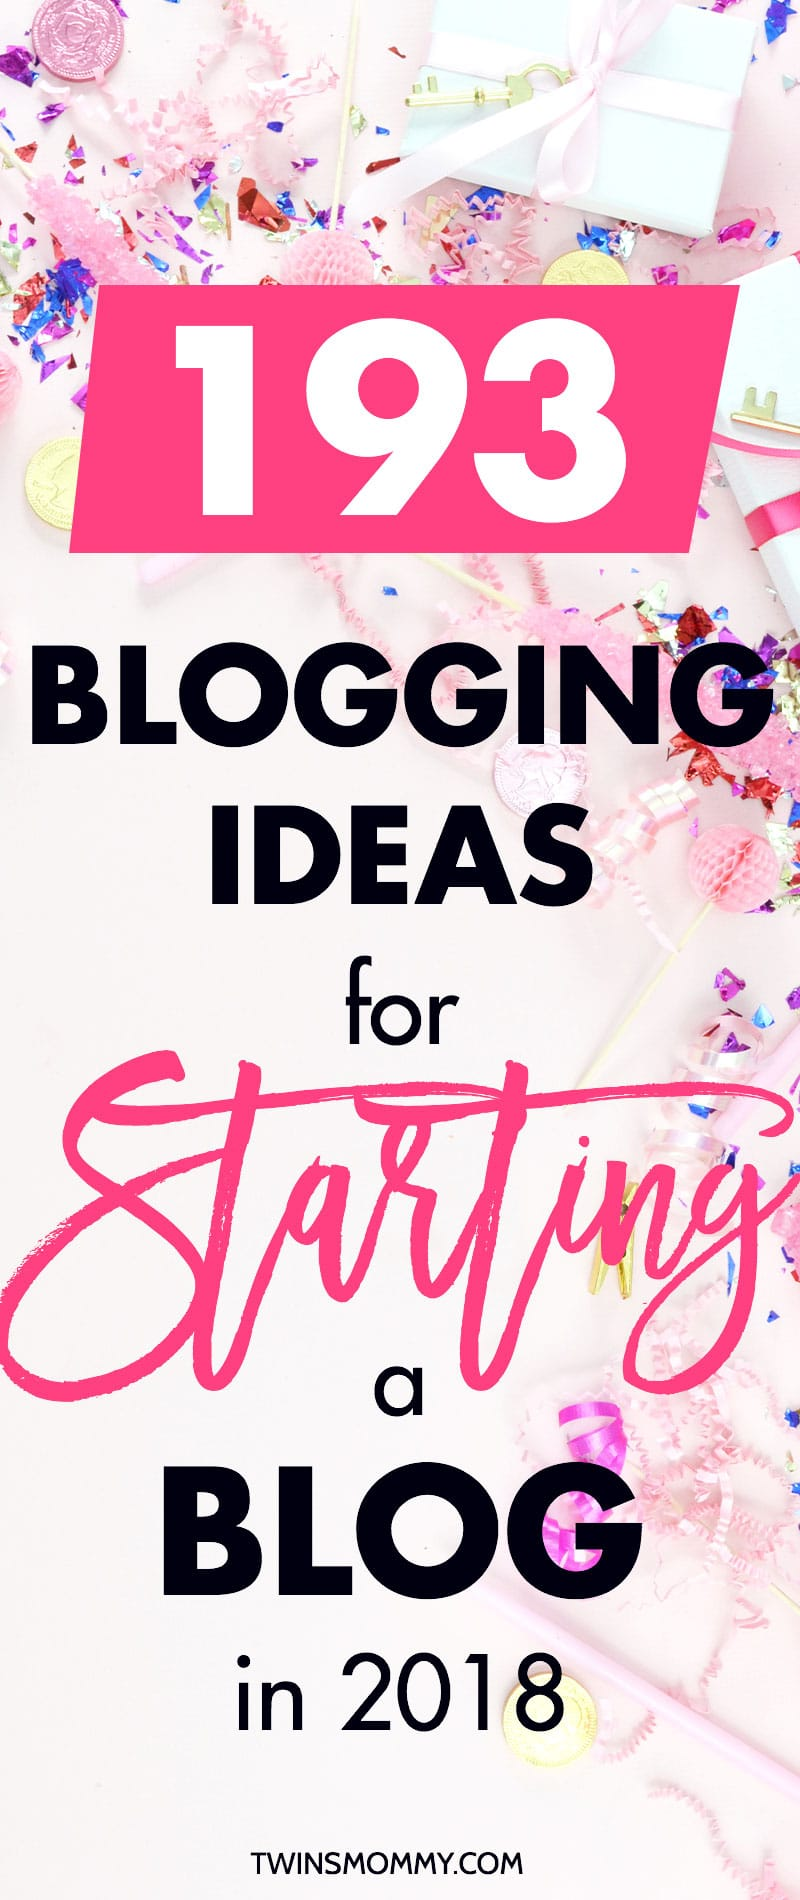 193 Blogging Ideas For Starting a Blog - Twins Mommy